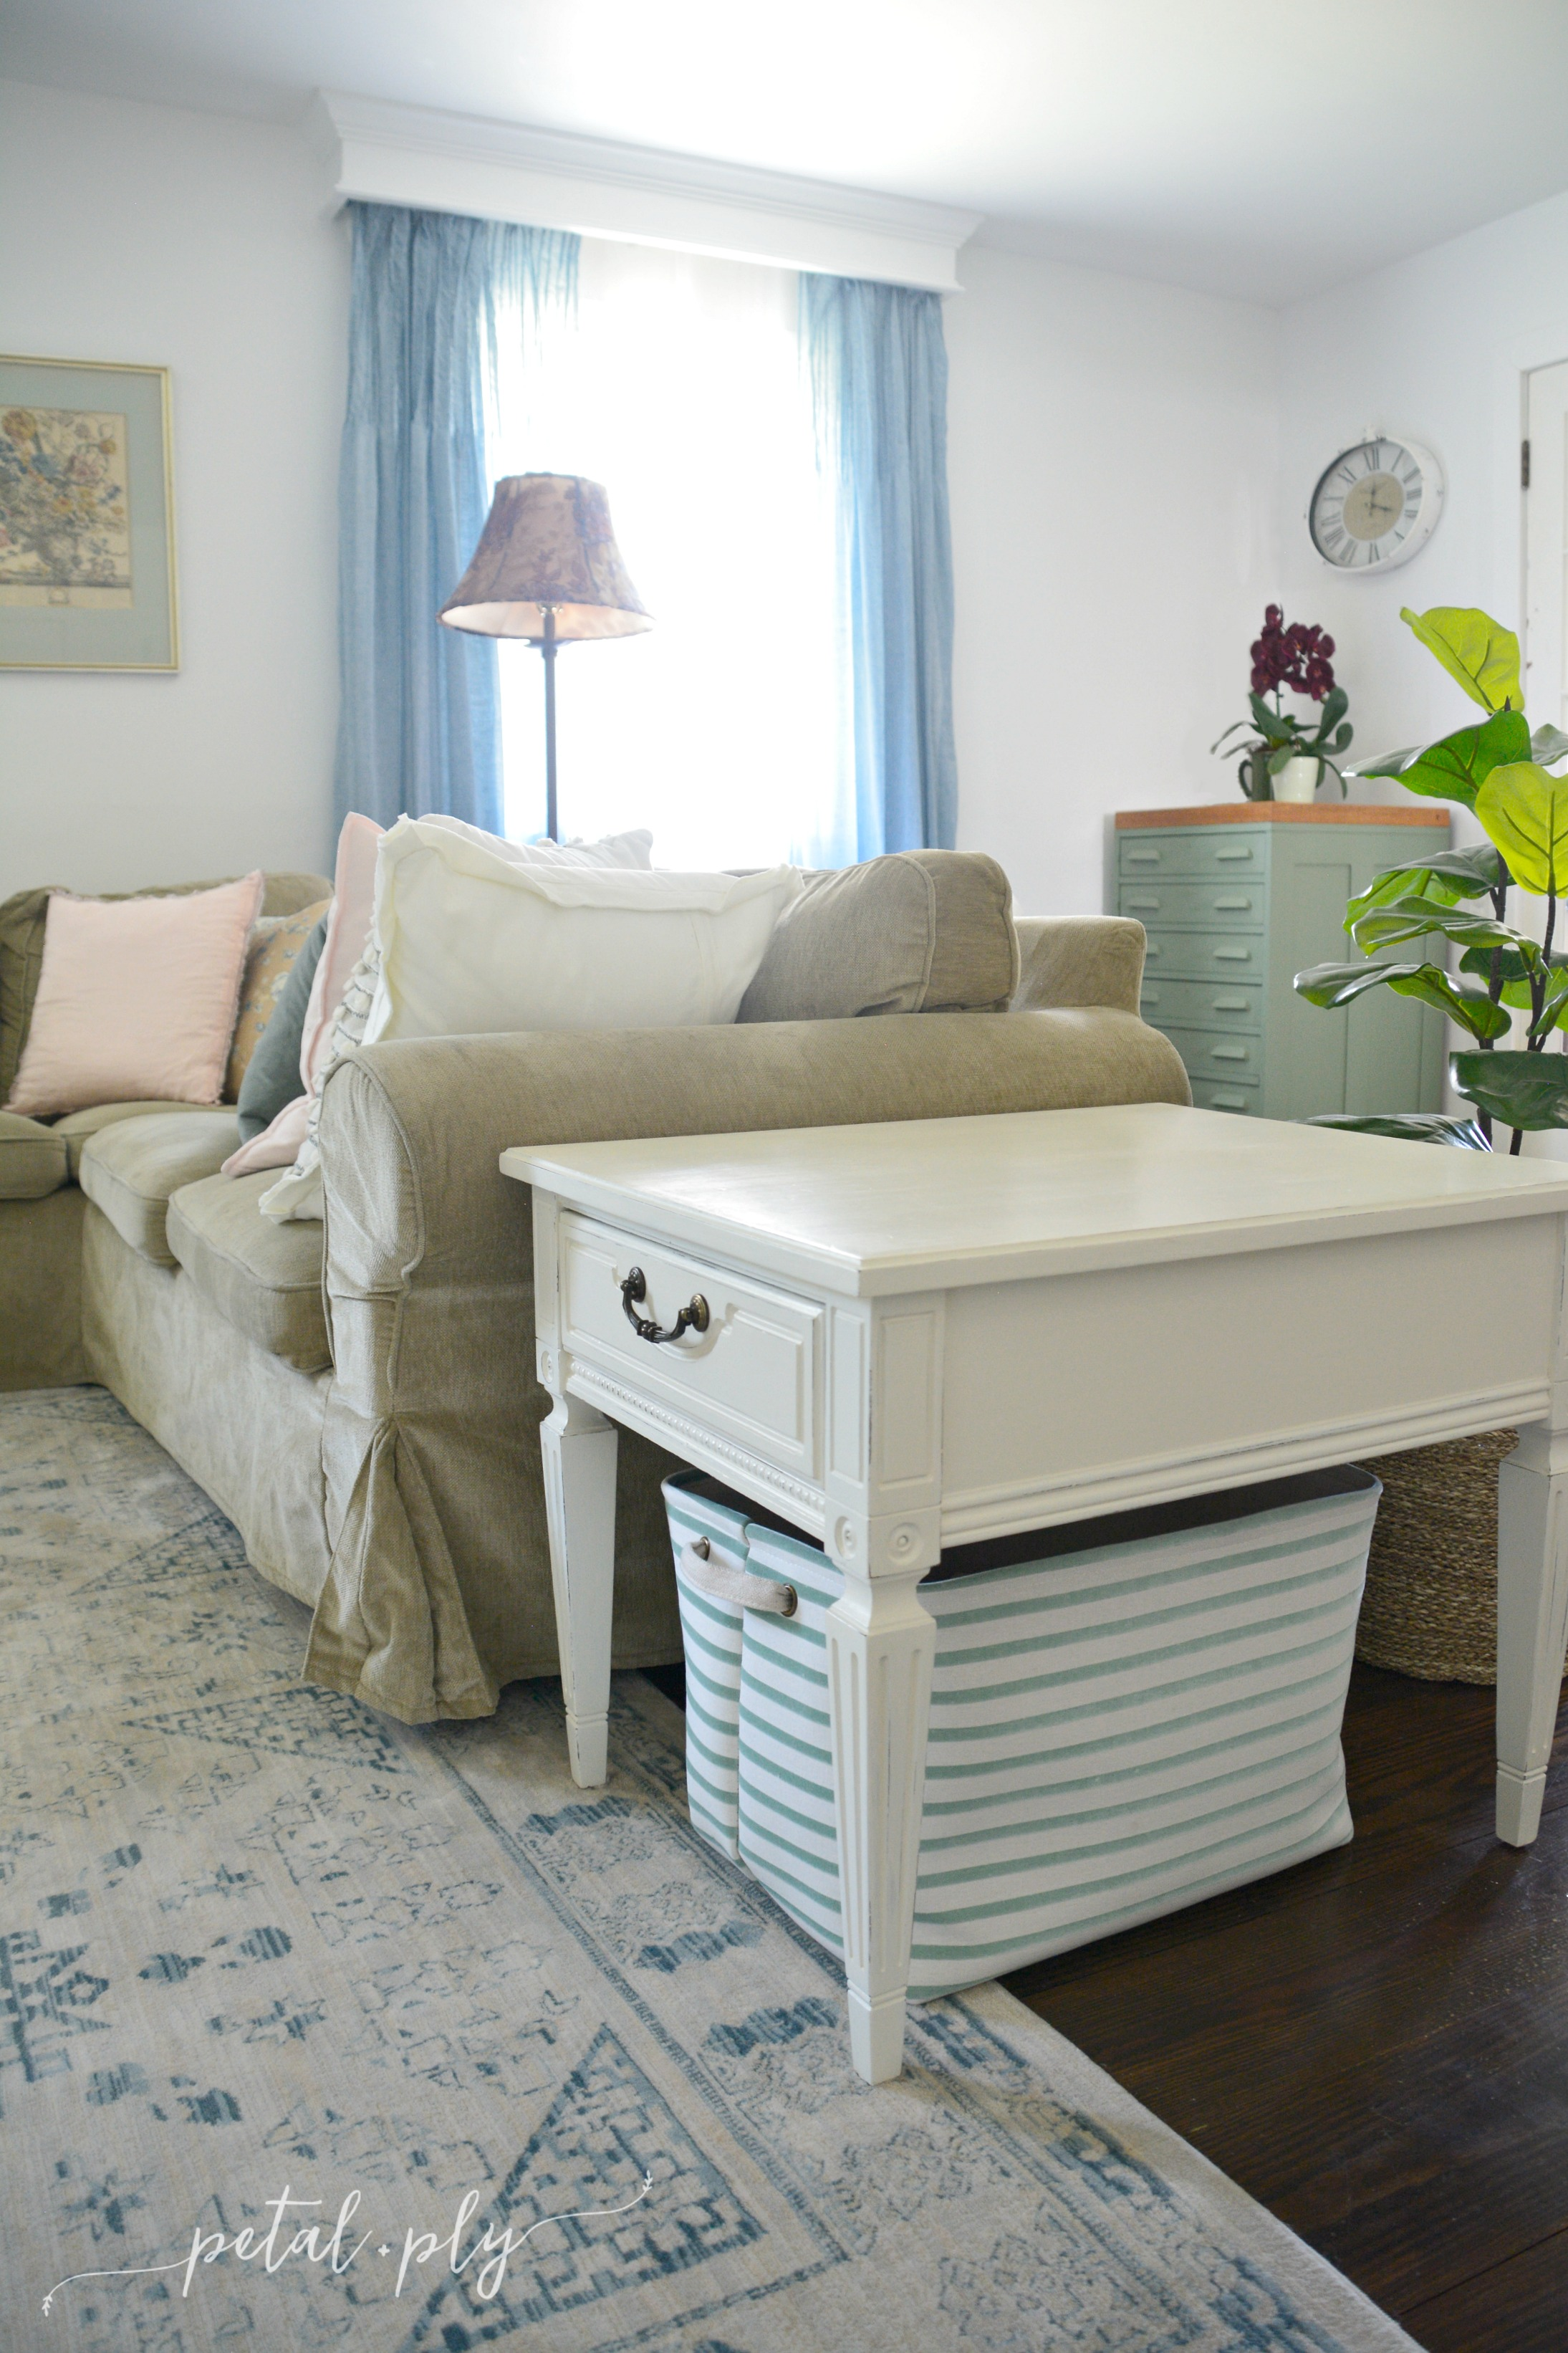 wm-end-table-with-striped-basket